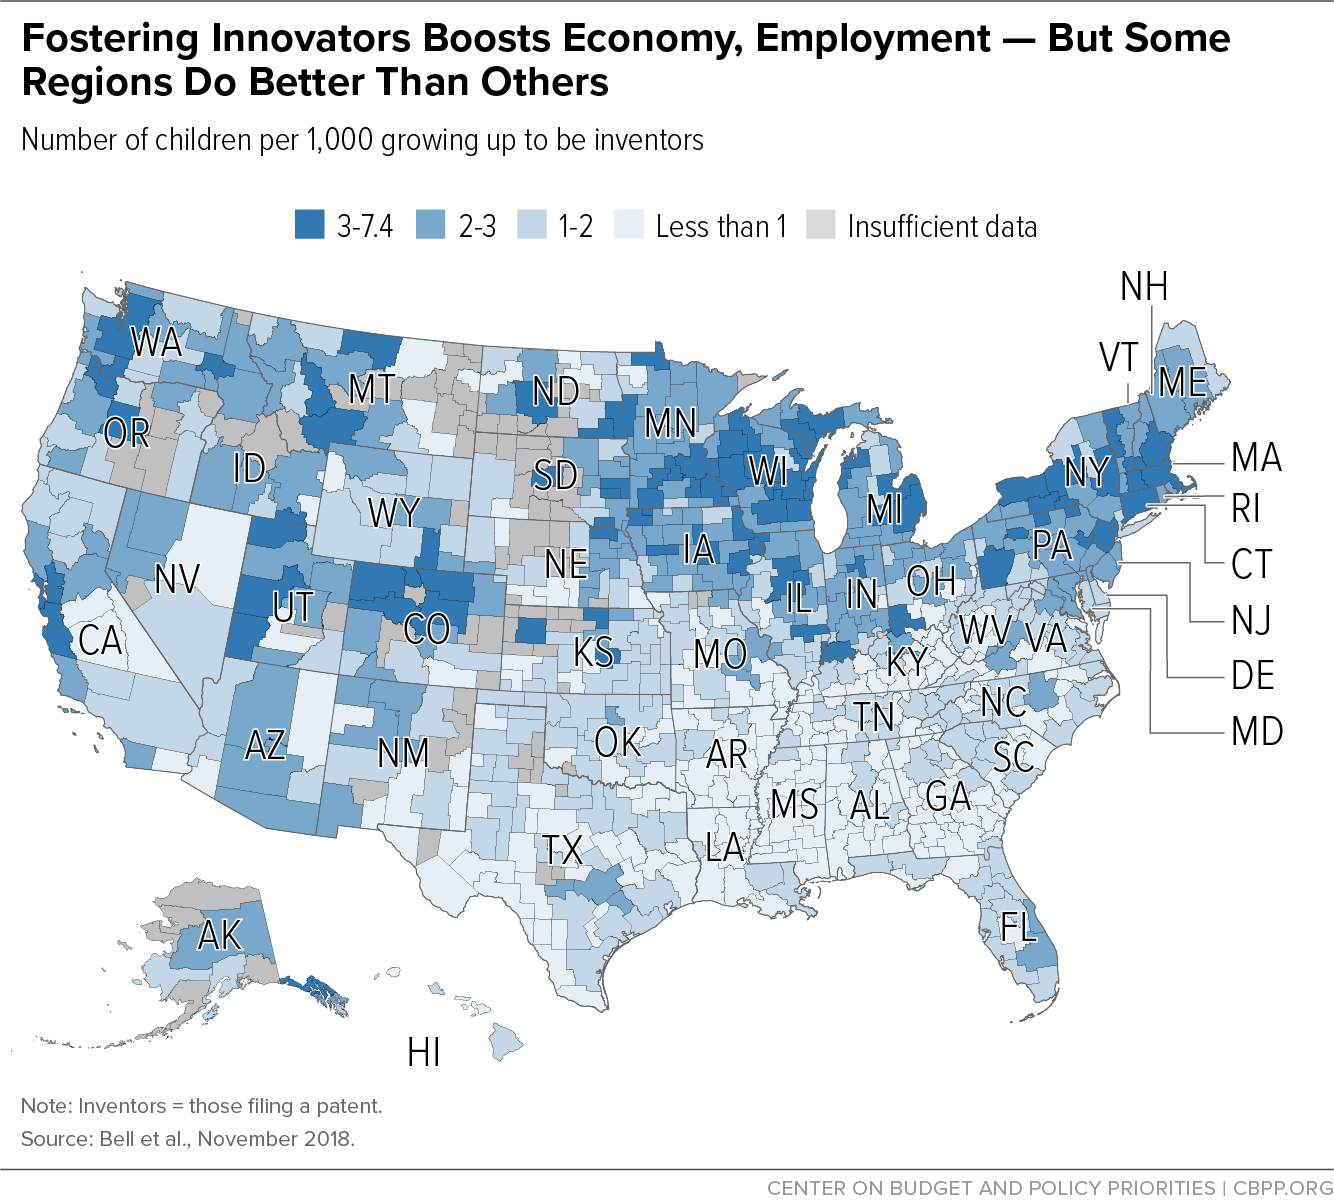 Fostering Innovators Boosts Economy, Employment — But Some Regions Do Better Than Others